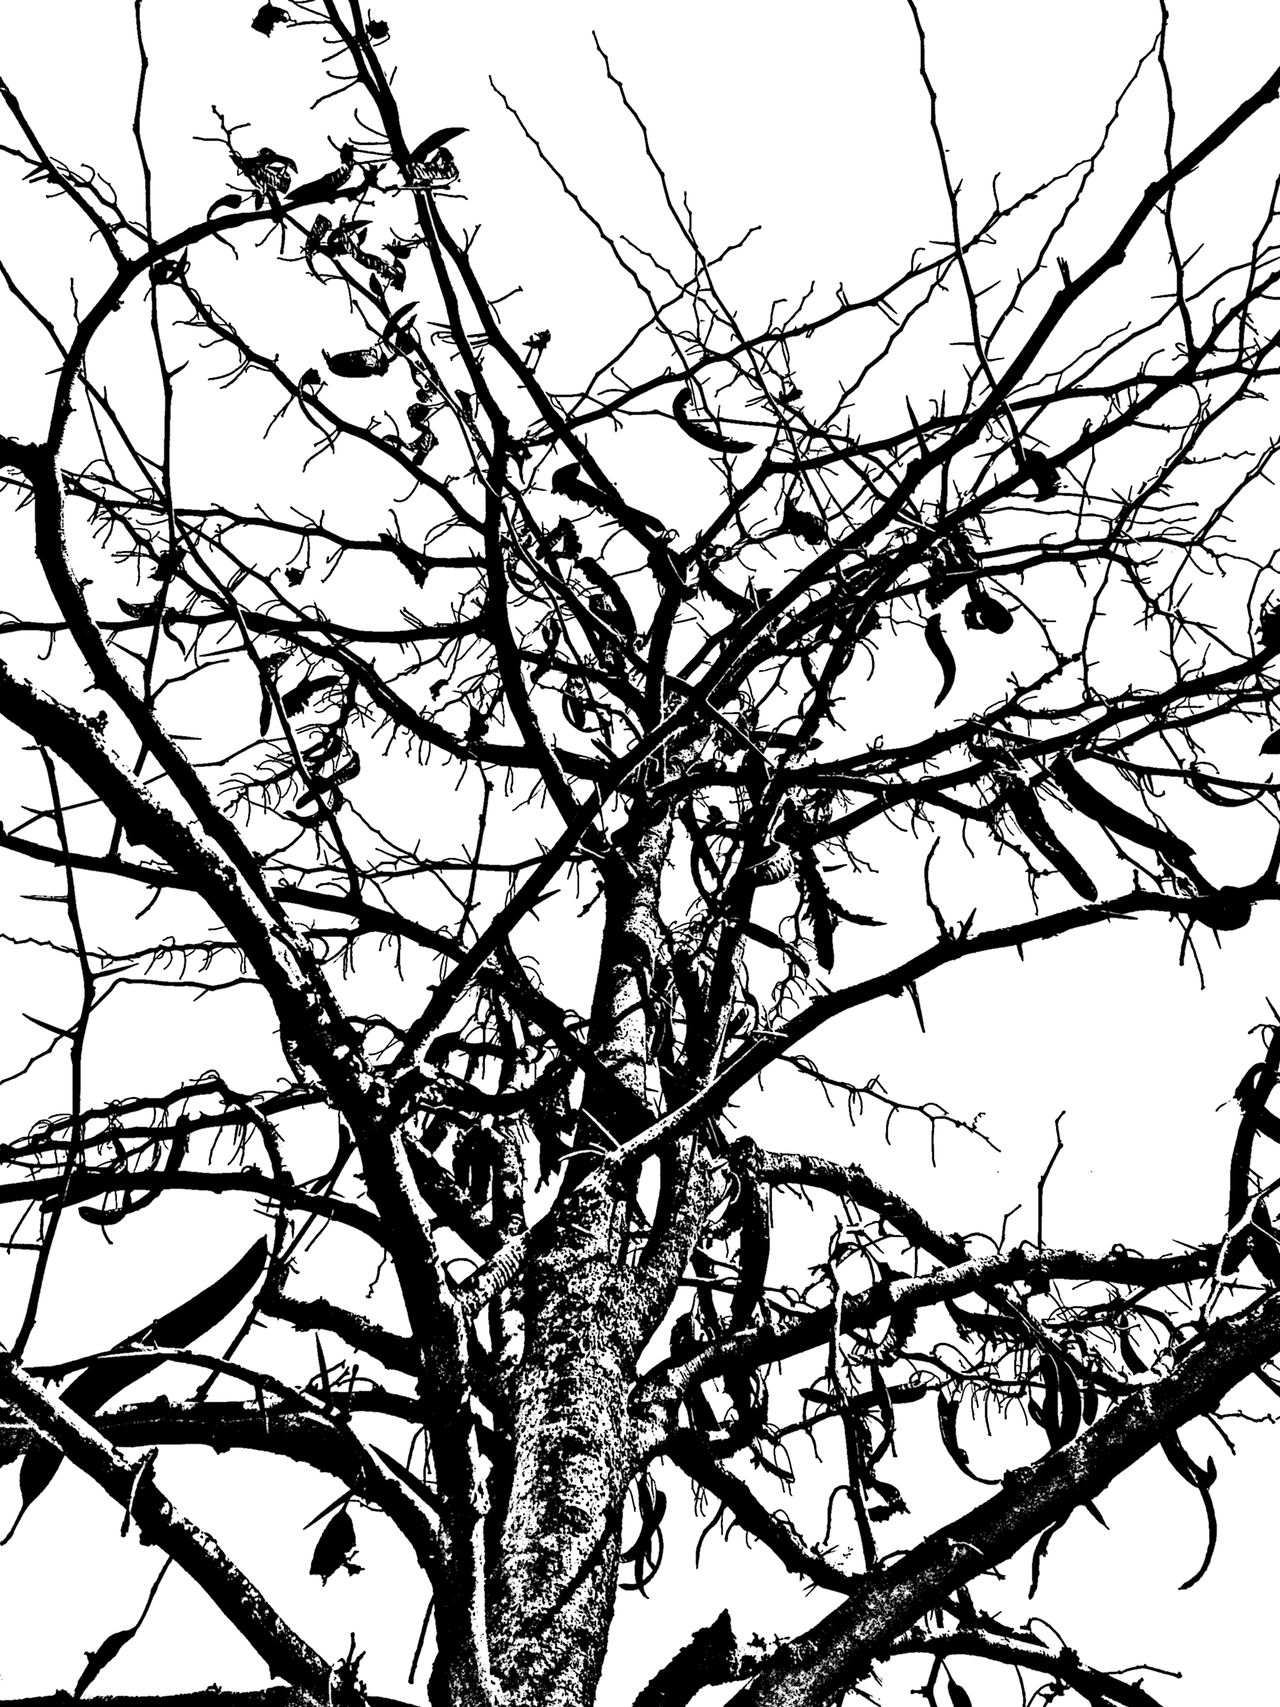 Beauty In Nature Black & White Black And White Blackandwhite Branch Contrast Day Low Angle View Nature No People Outdoors Sky Tree